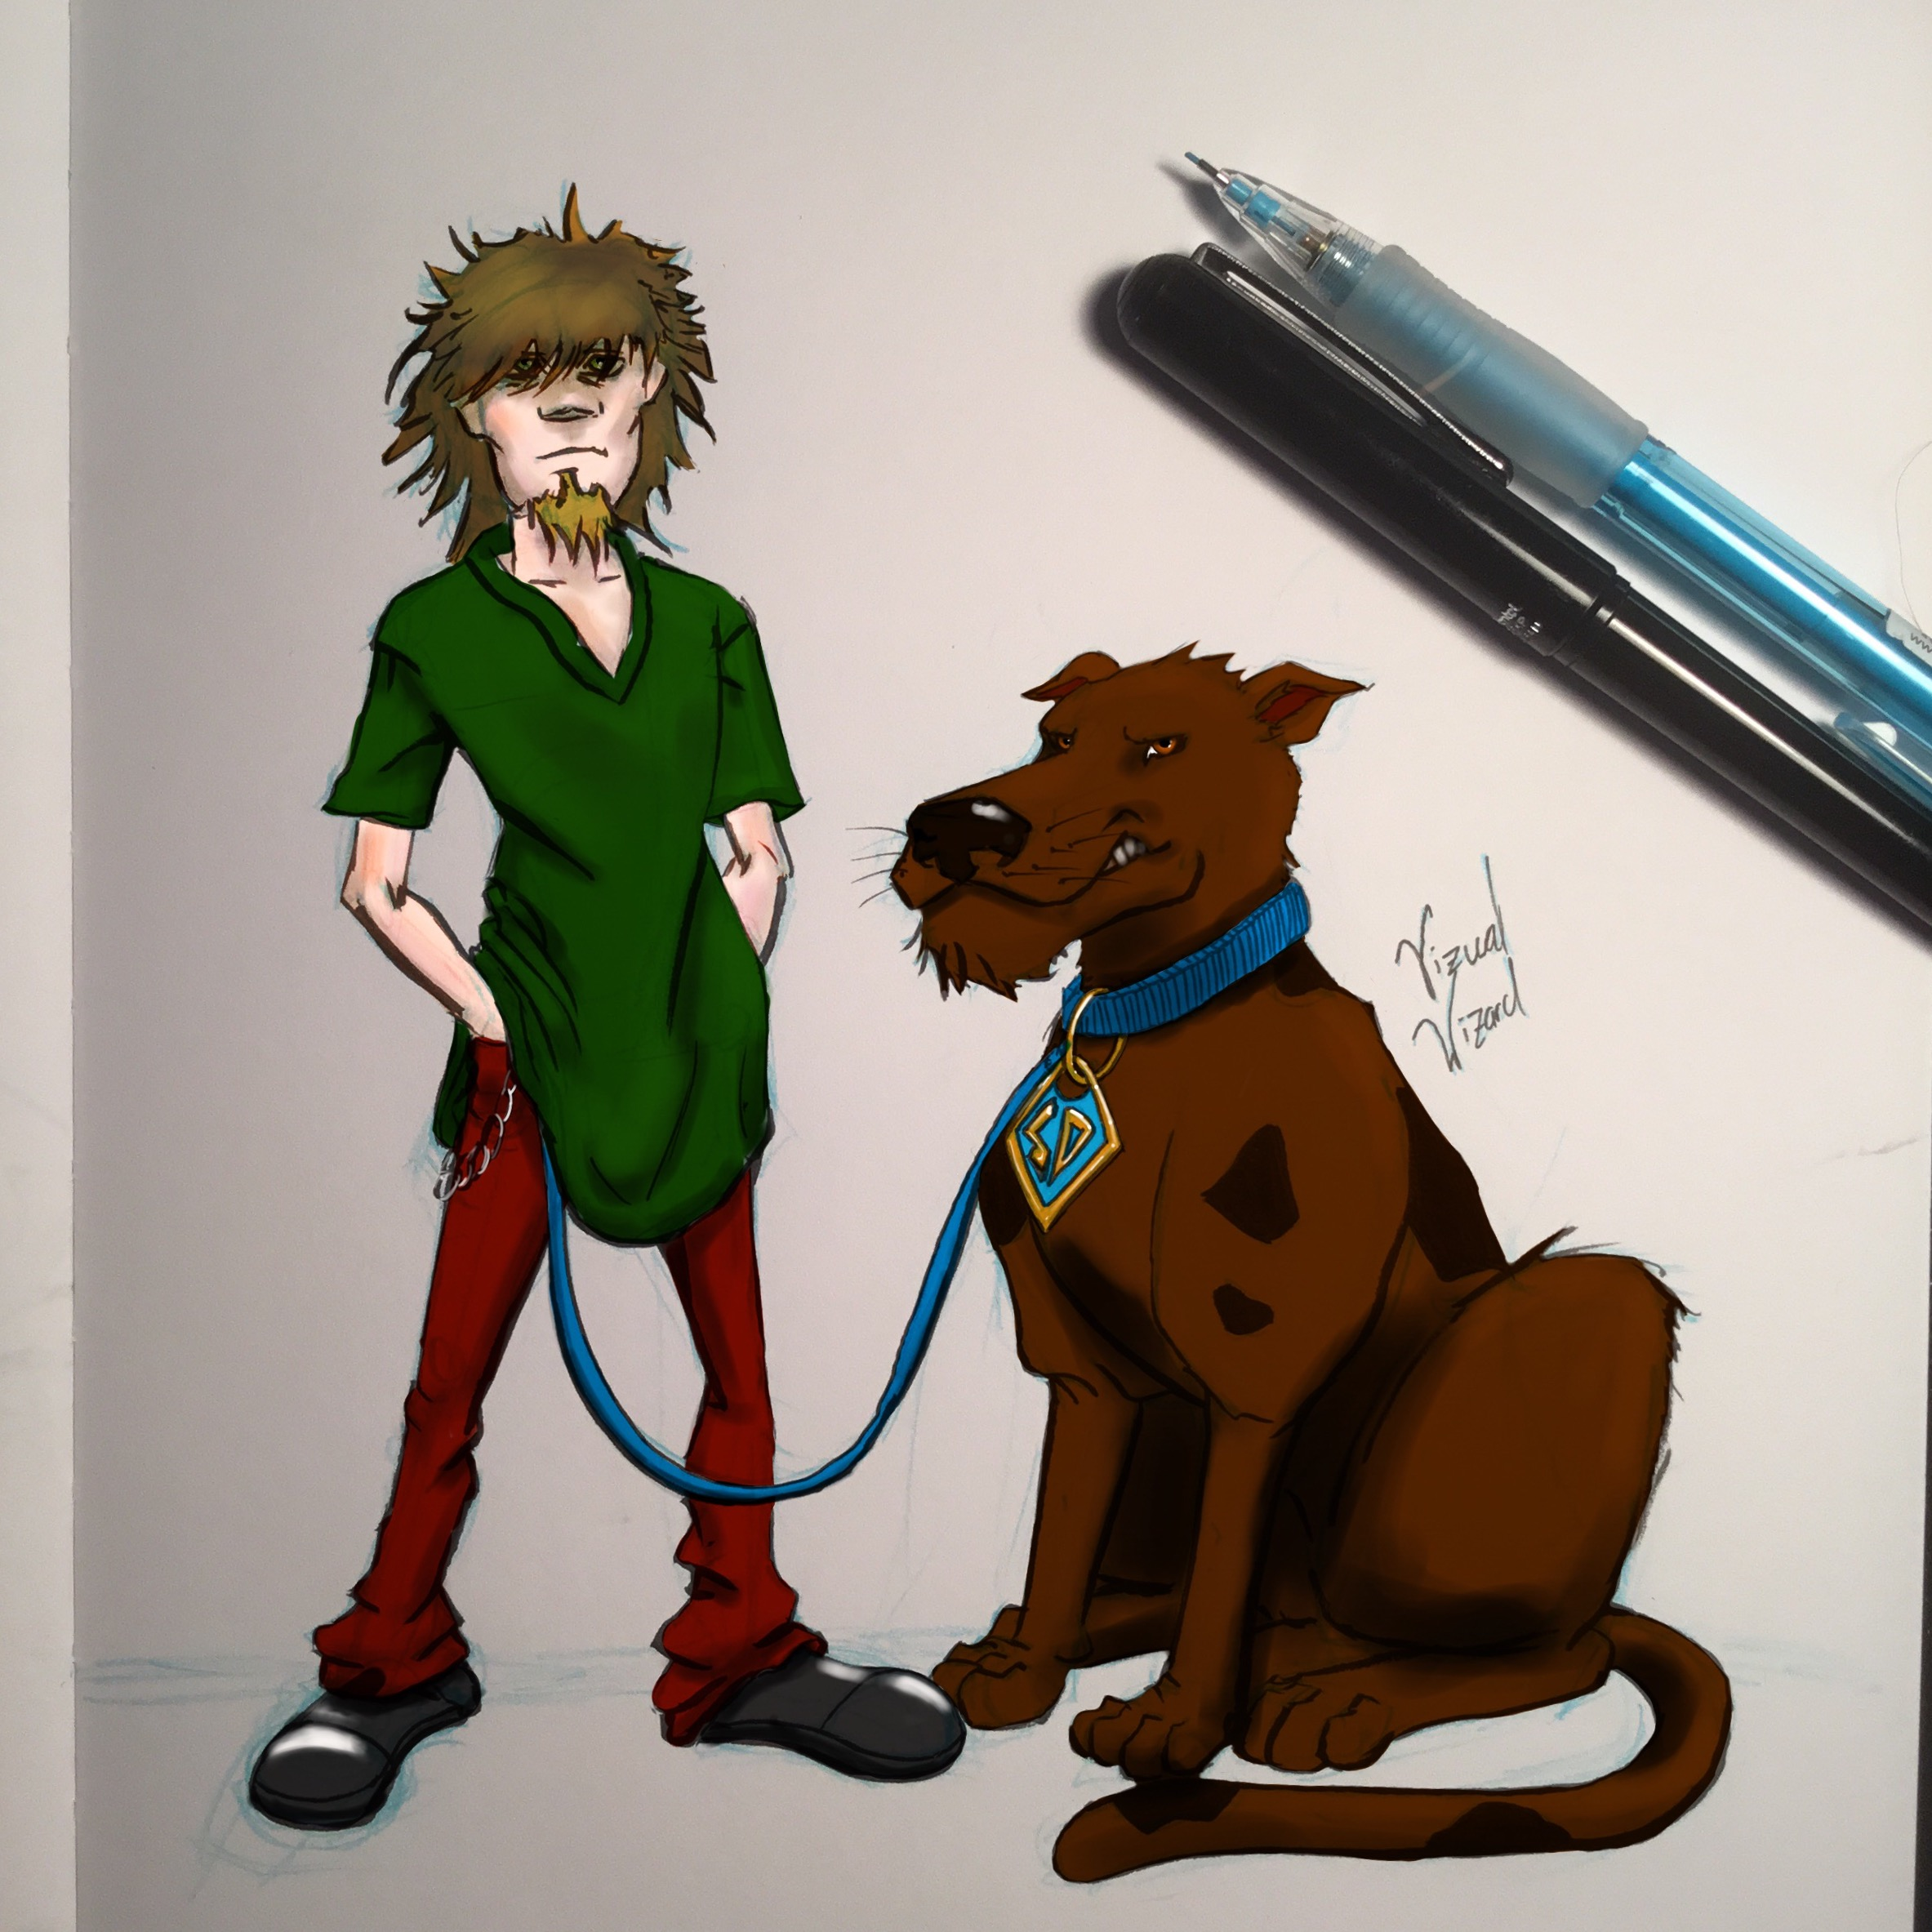 Shaggs and Scoobs